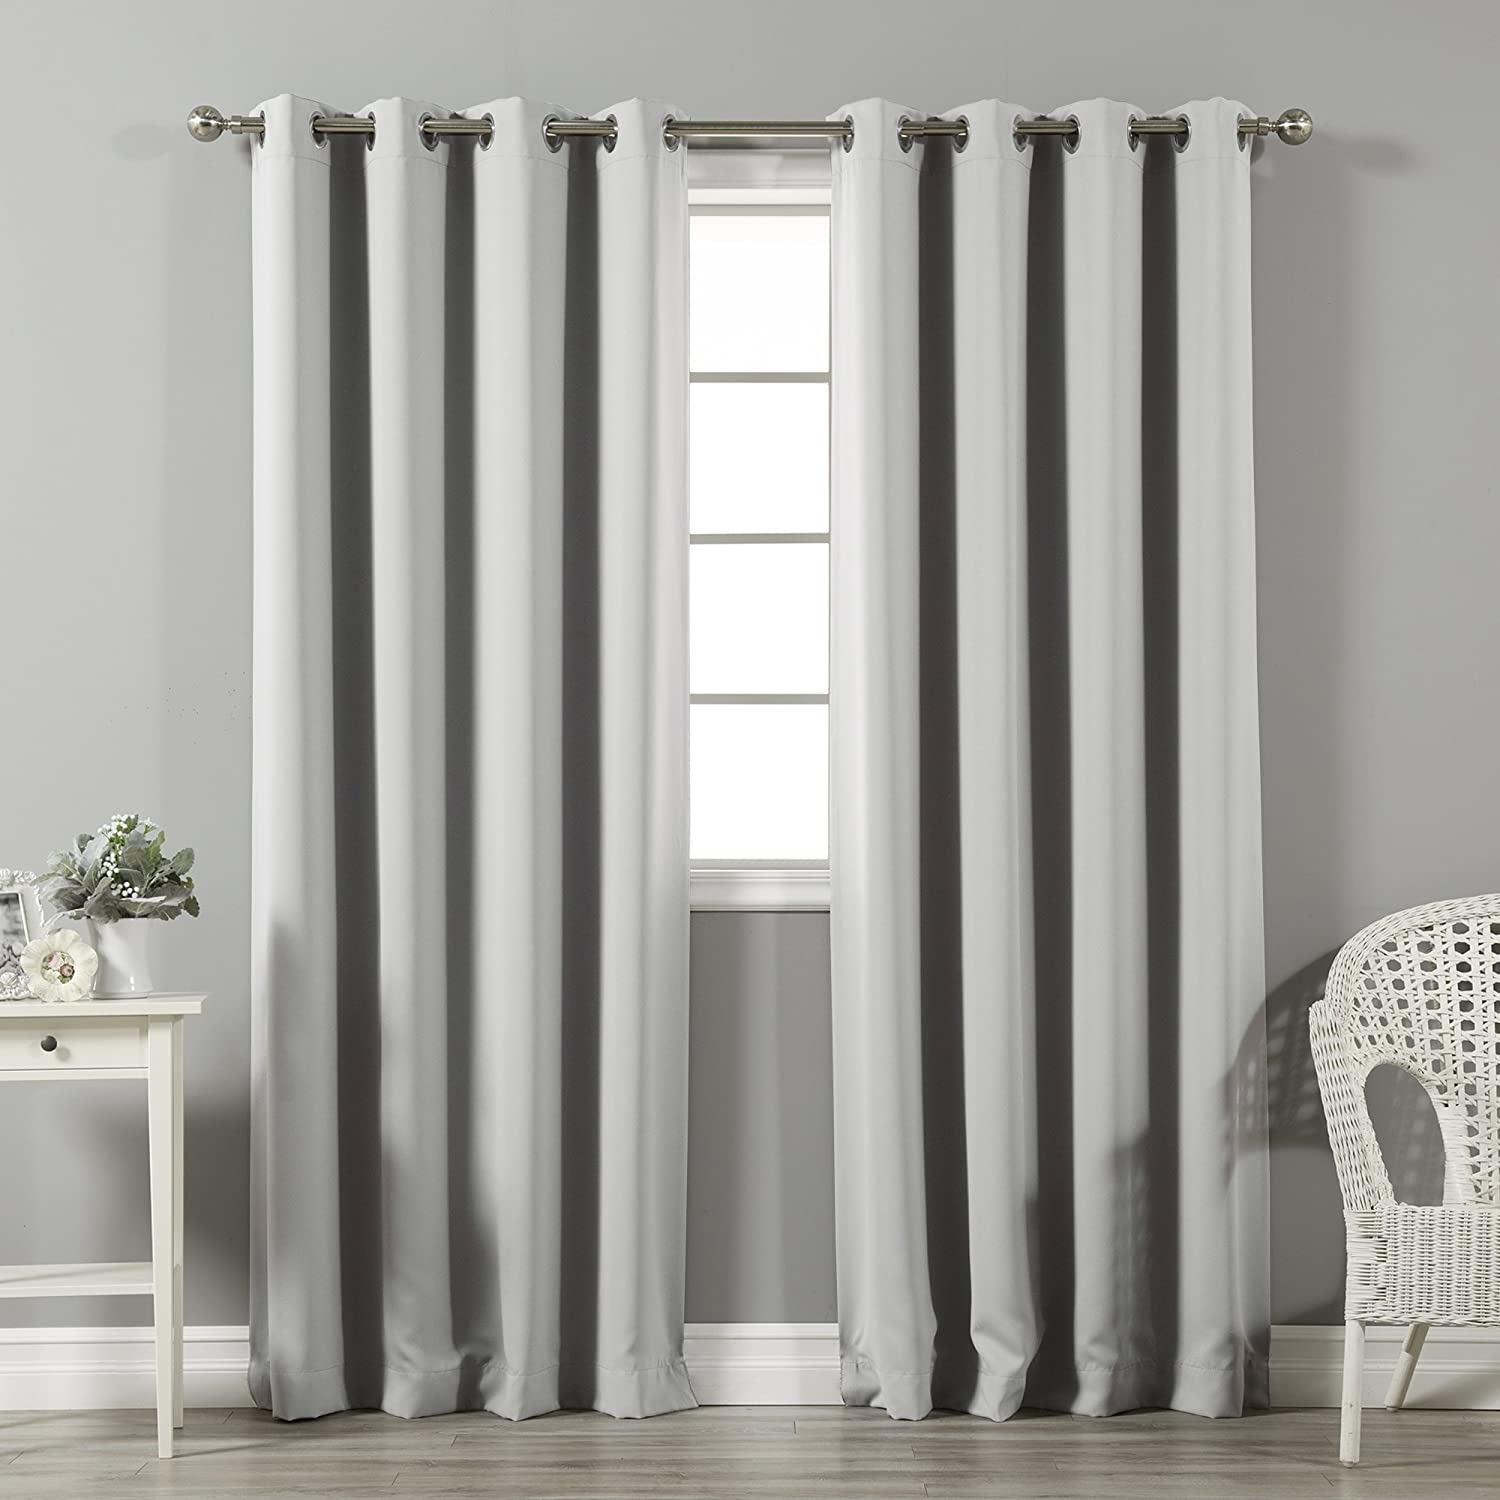 Best Home Fashion Thermal Insulated Blackout Curtains - Stainless Steel Nickel Grommet Top - Light Grey